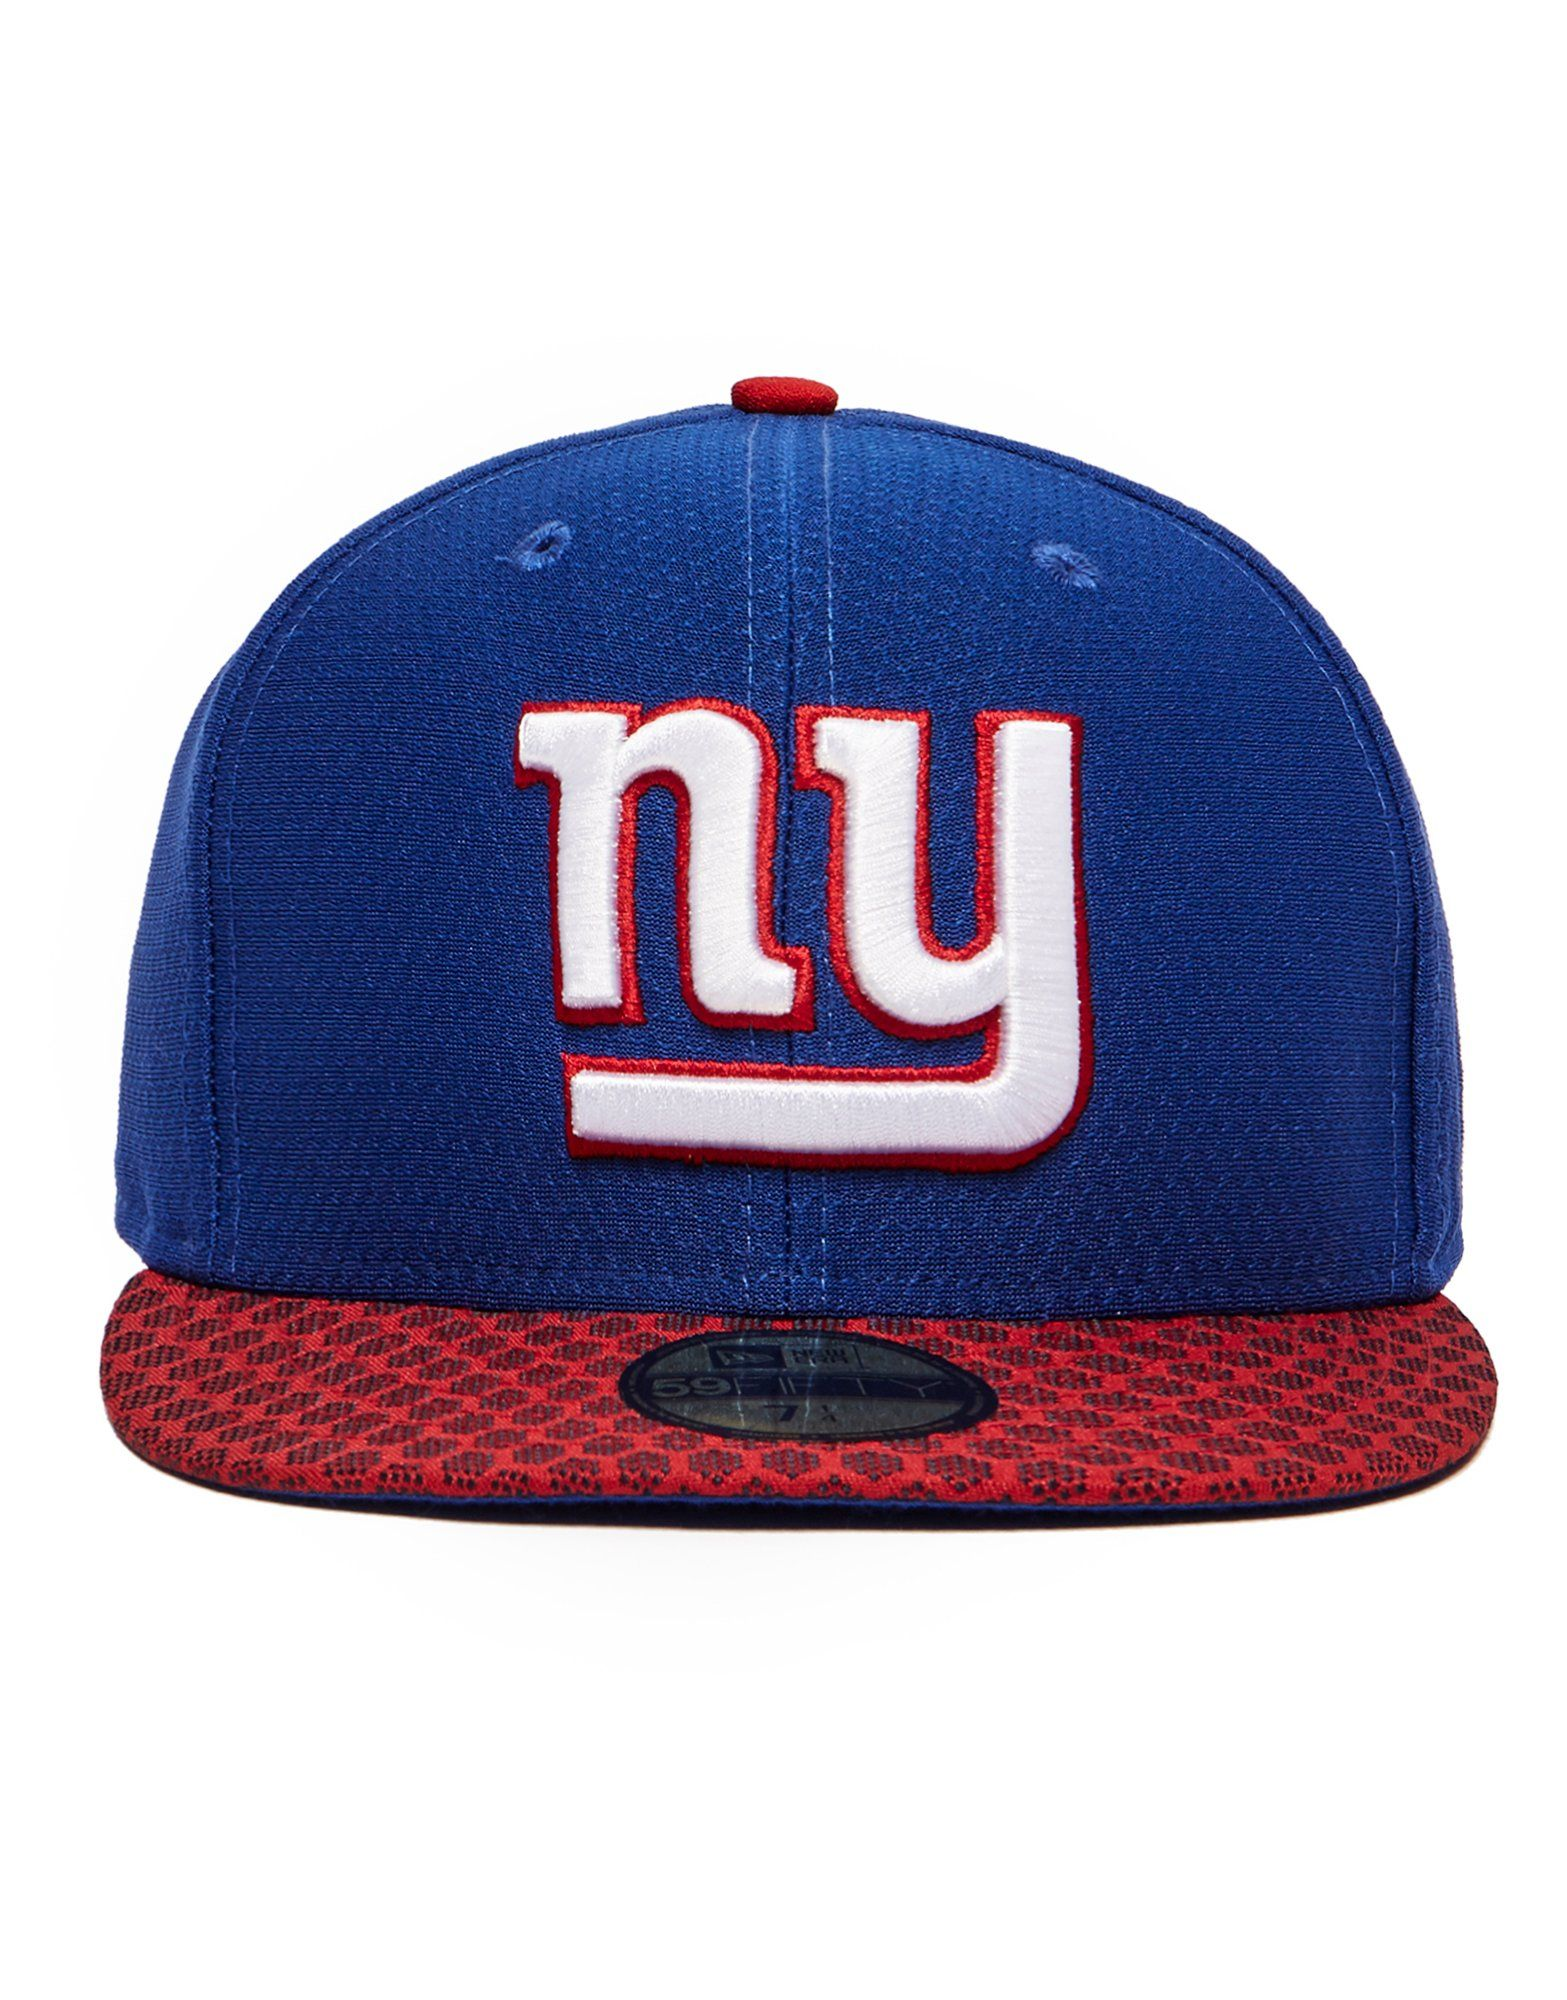 new era new york giants 59fifty cap jd sports. Black Bedroom Furniture Sets. Home Design Ideas